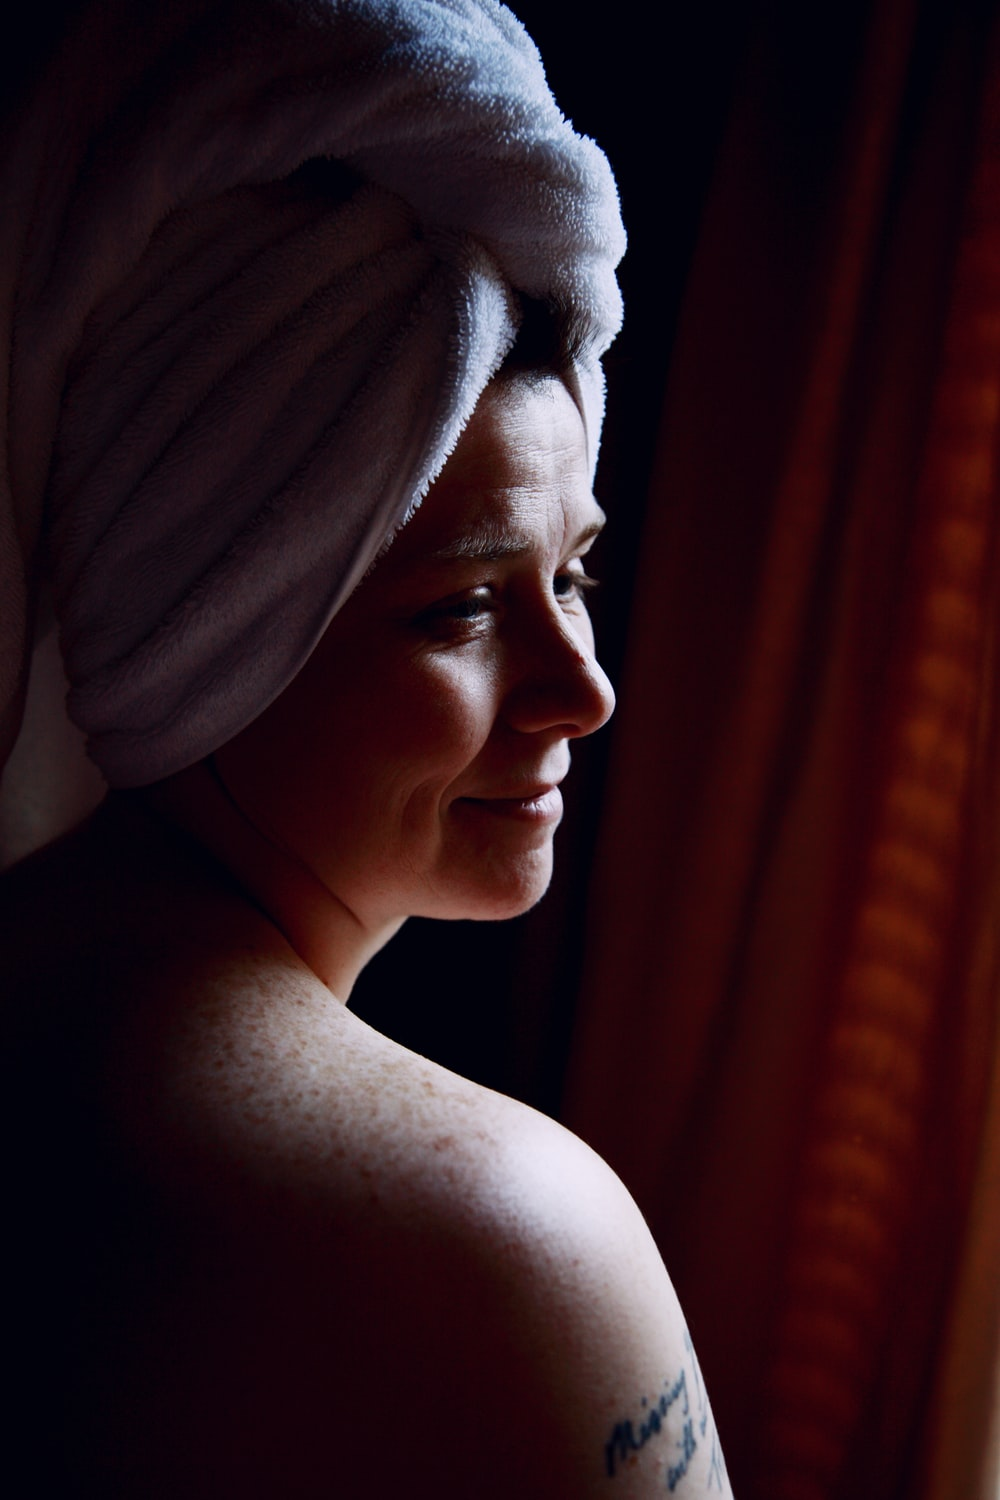 woman in white towel on head